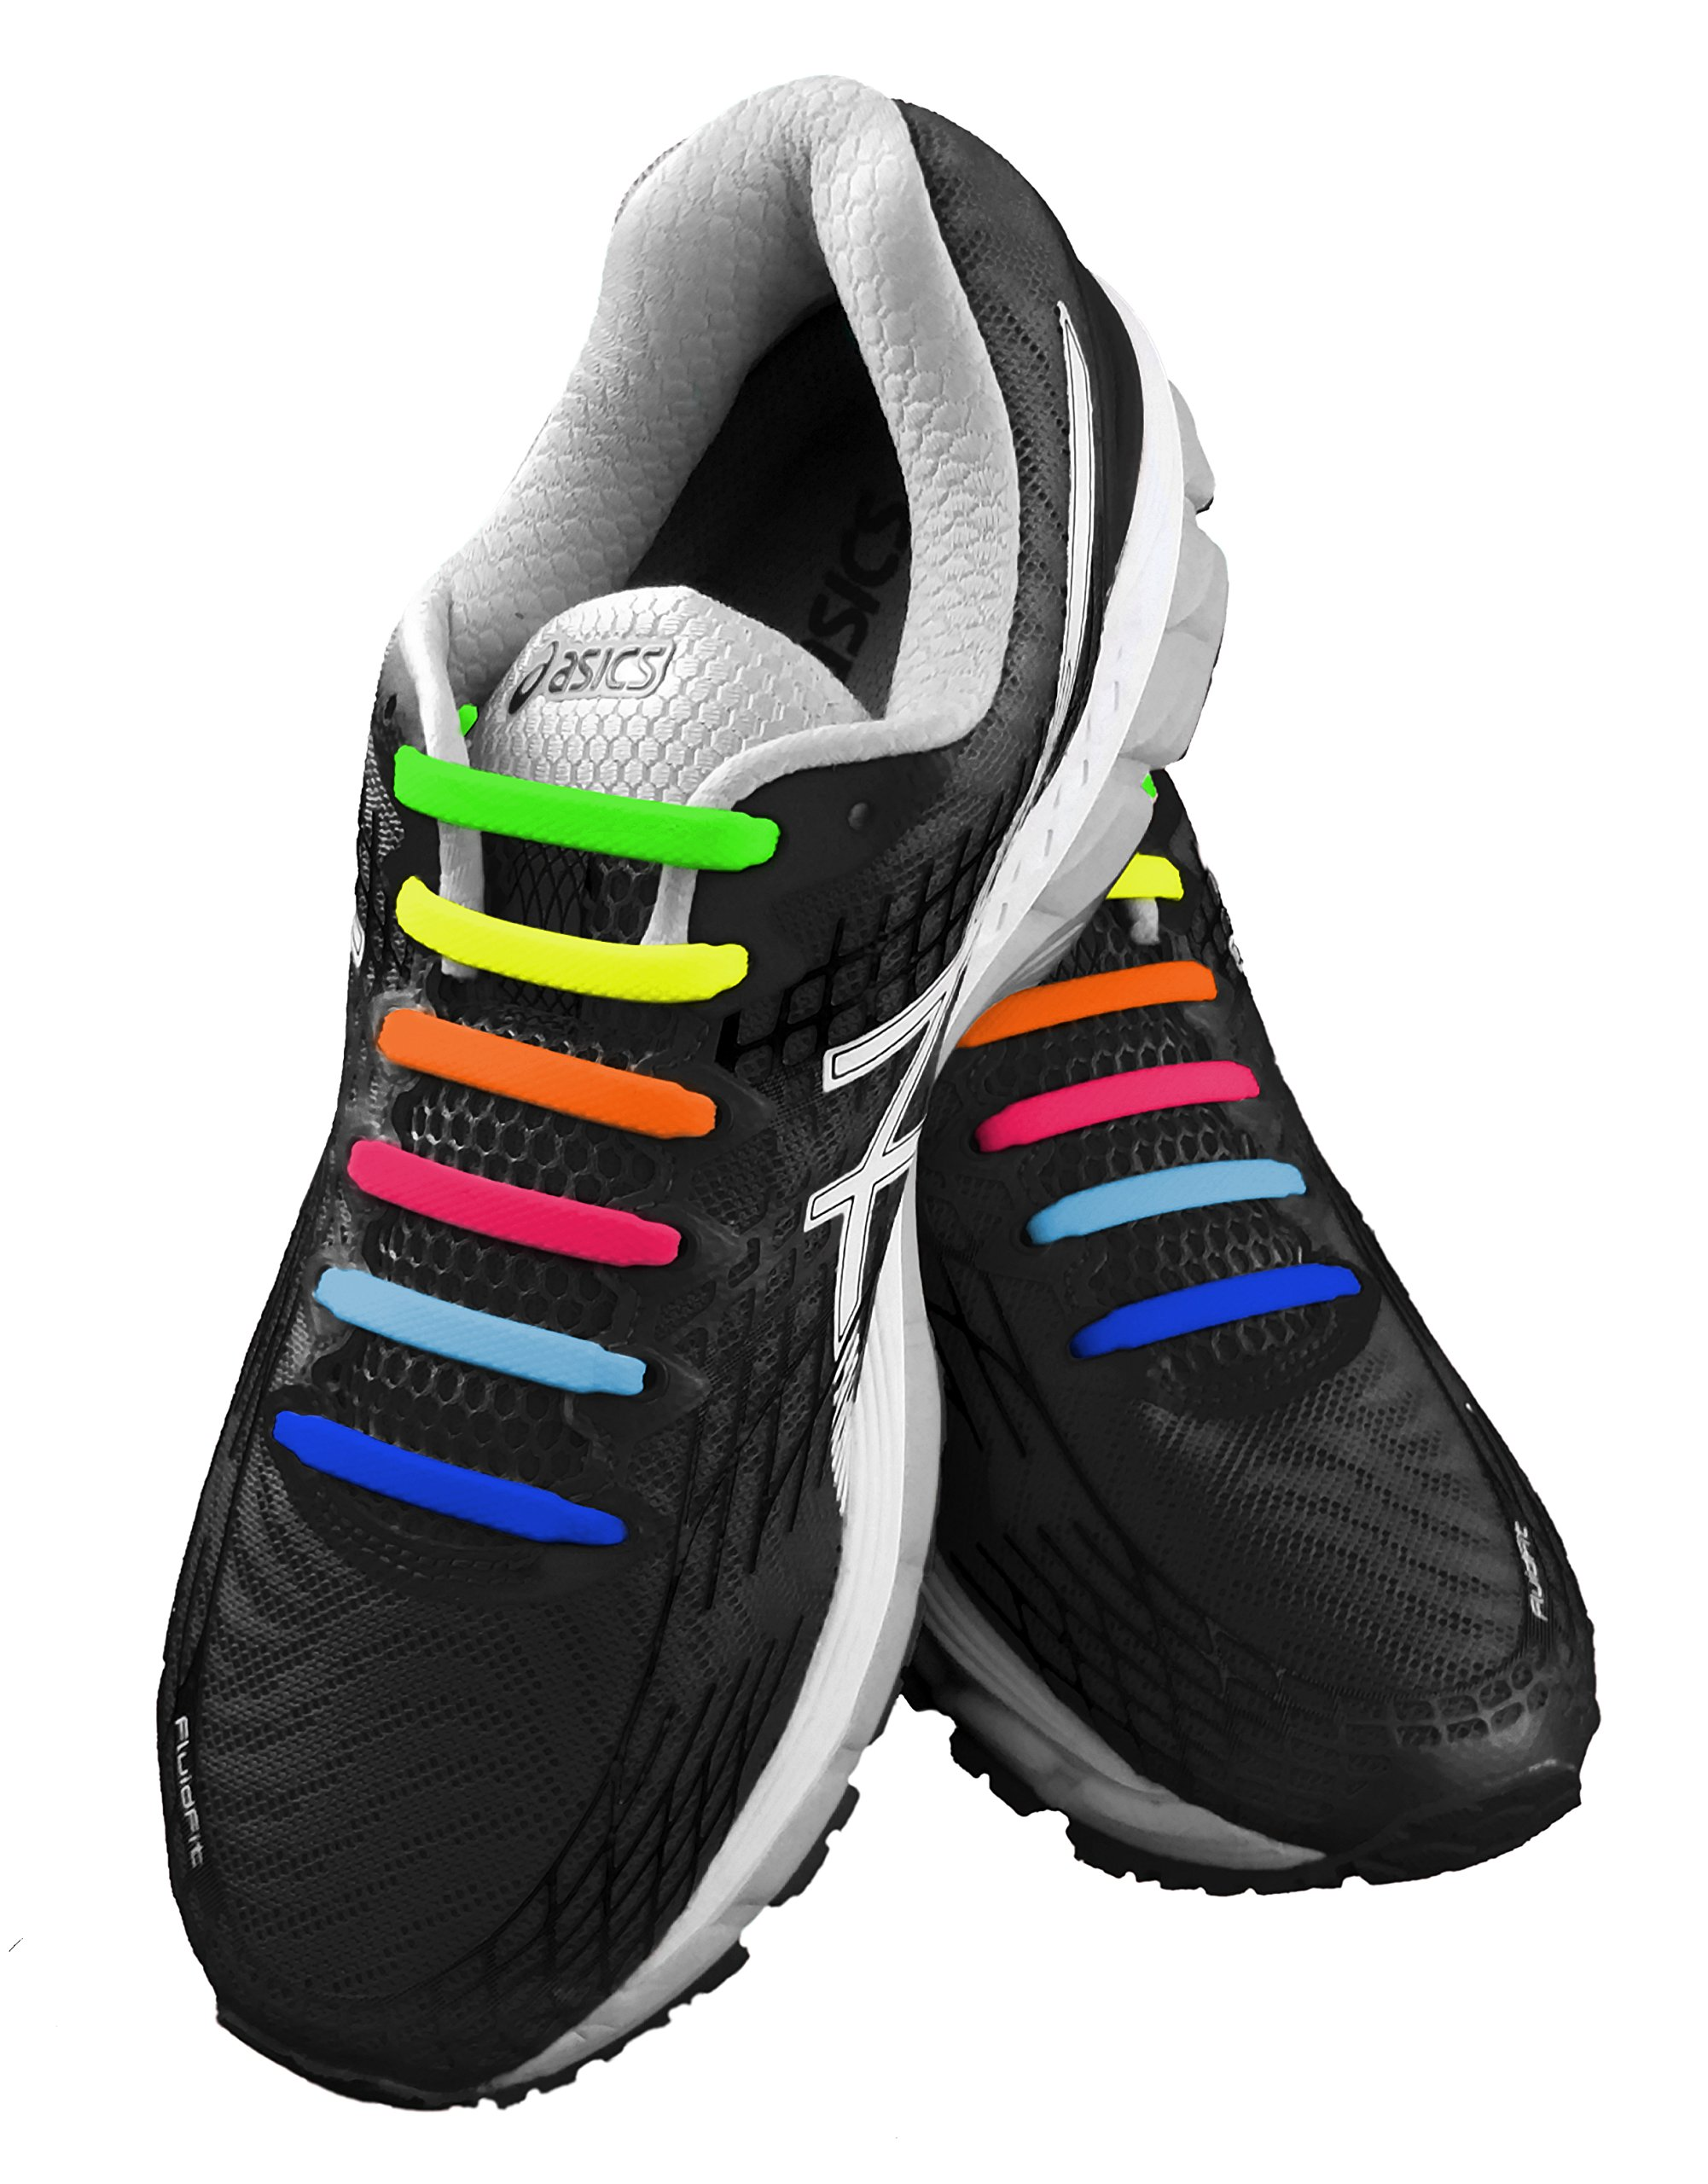 79fa20b8c71a0 KICKS No Tie Shoelaces for Kids & Adults. The Elastic, Silicone Shoe ...